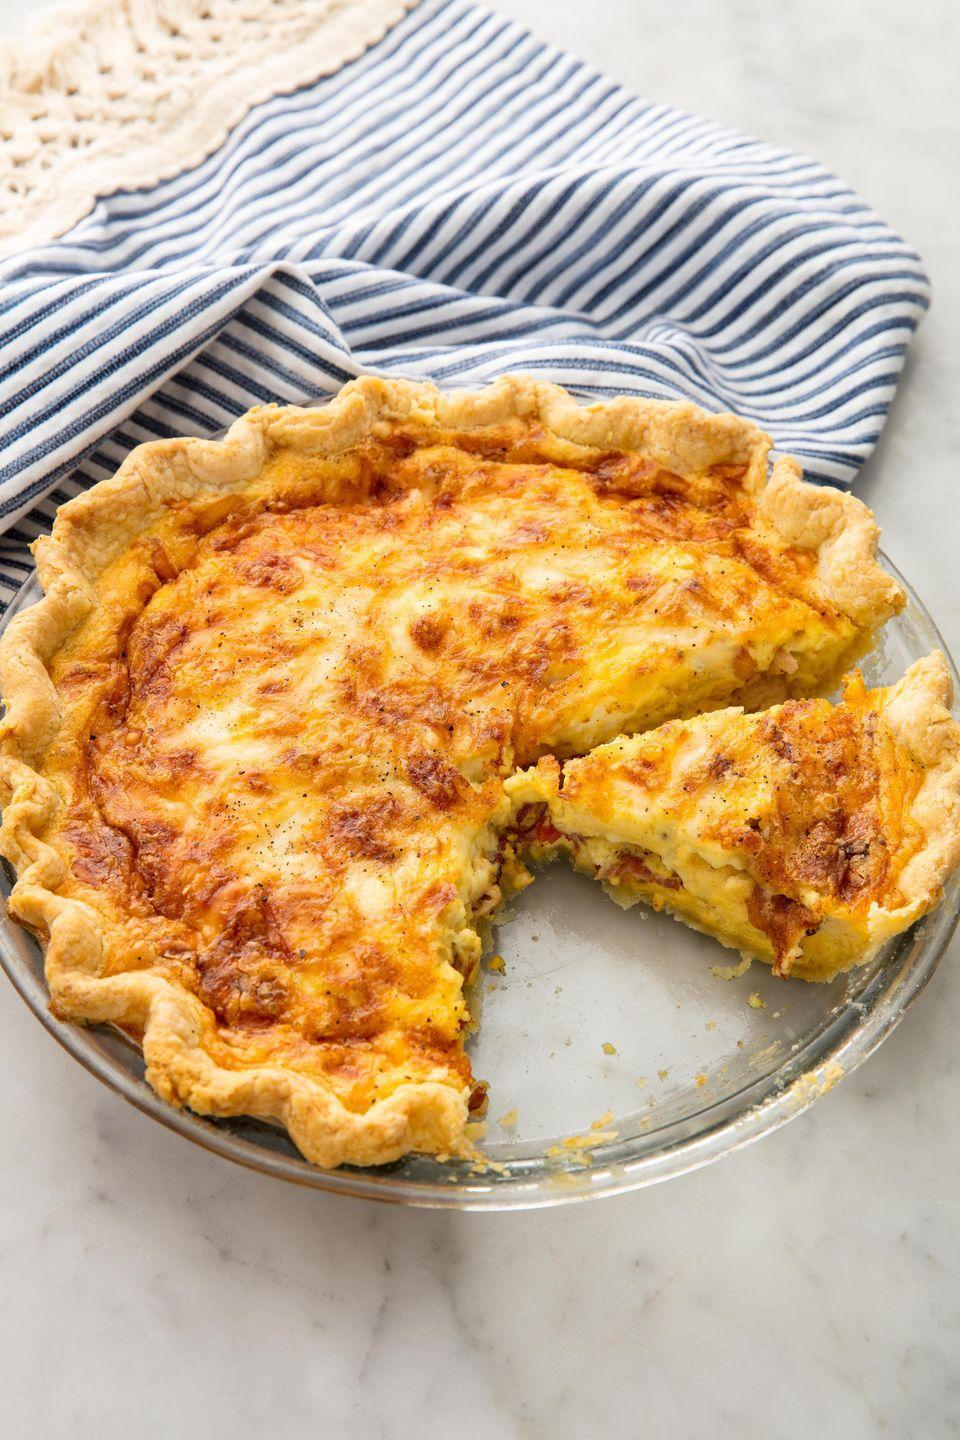 """<p>The absolute best thing to wake up to.</p><p>Get the recipe from <a href=""""https://www.delish.com/cooking/recipe-ideas/recipes/a58388/easy-quiche-lorraine-recipe/"""" rel=""""nofollow noopener"""" target=""""_blank"""" data-ylk=""""slk:Delish"""" class=""""link rapid-noclick-resp"""">Delish</a>. </p>"""